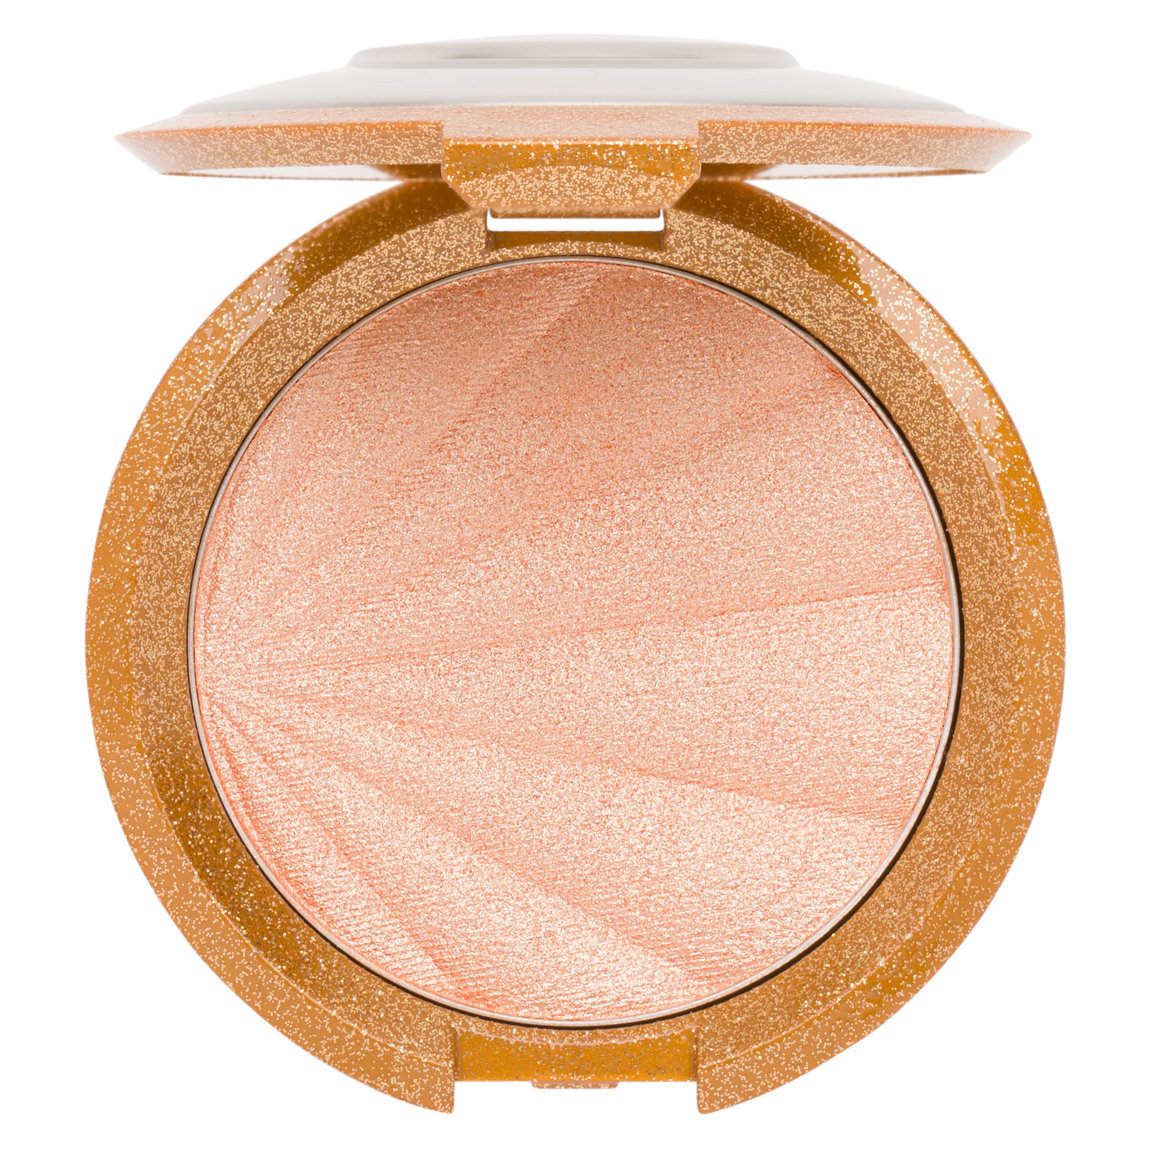 BECCA Collector's Edition: Shimmering Skin Perfector Pressed Highlighter product smear.